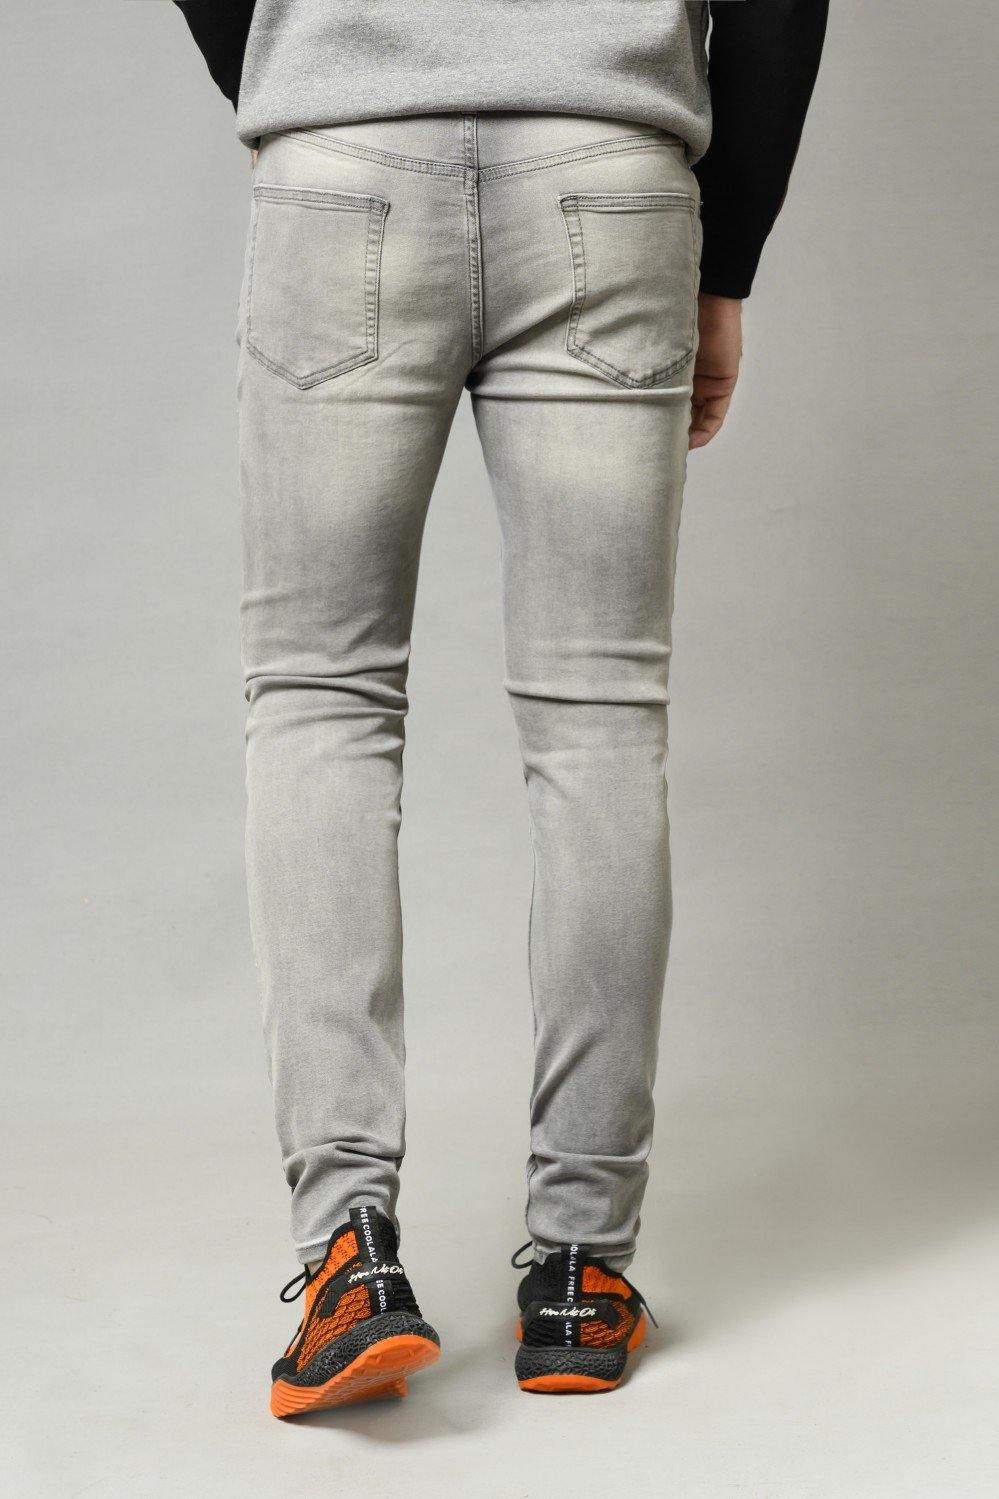 GREY Denim HMDBF20031 - HOPE NOT OUT